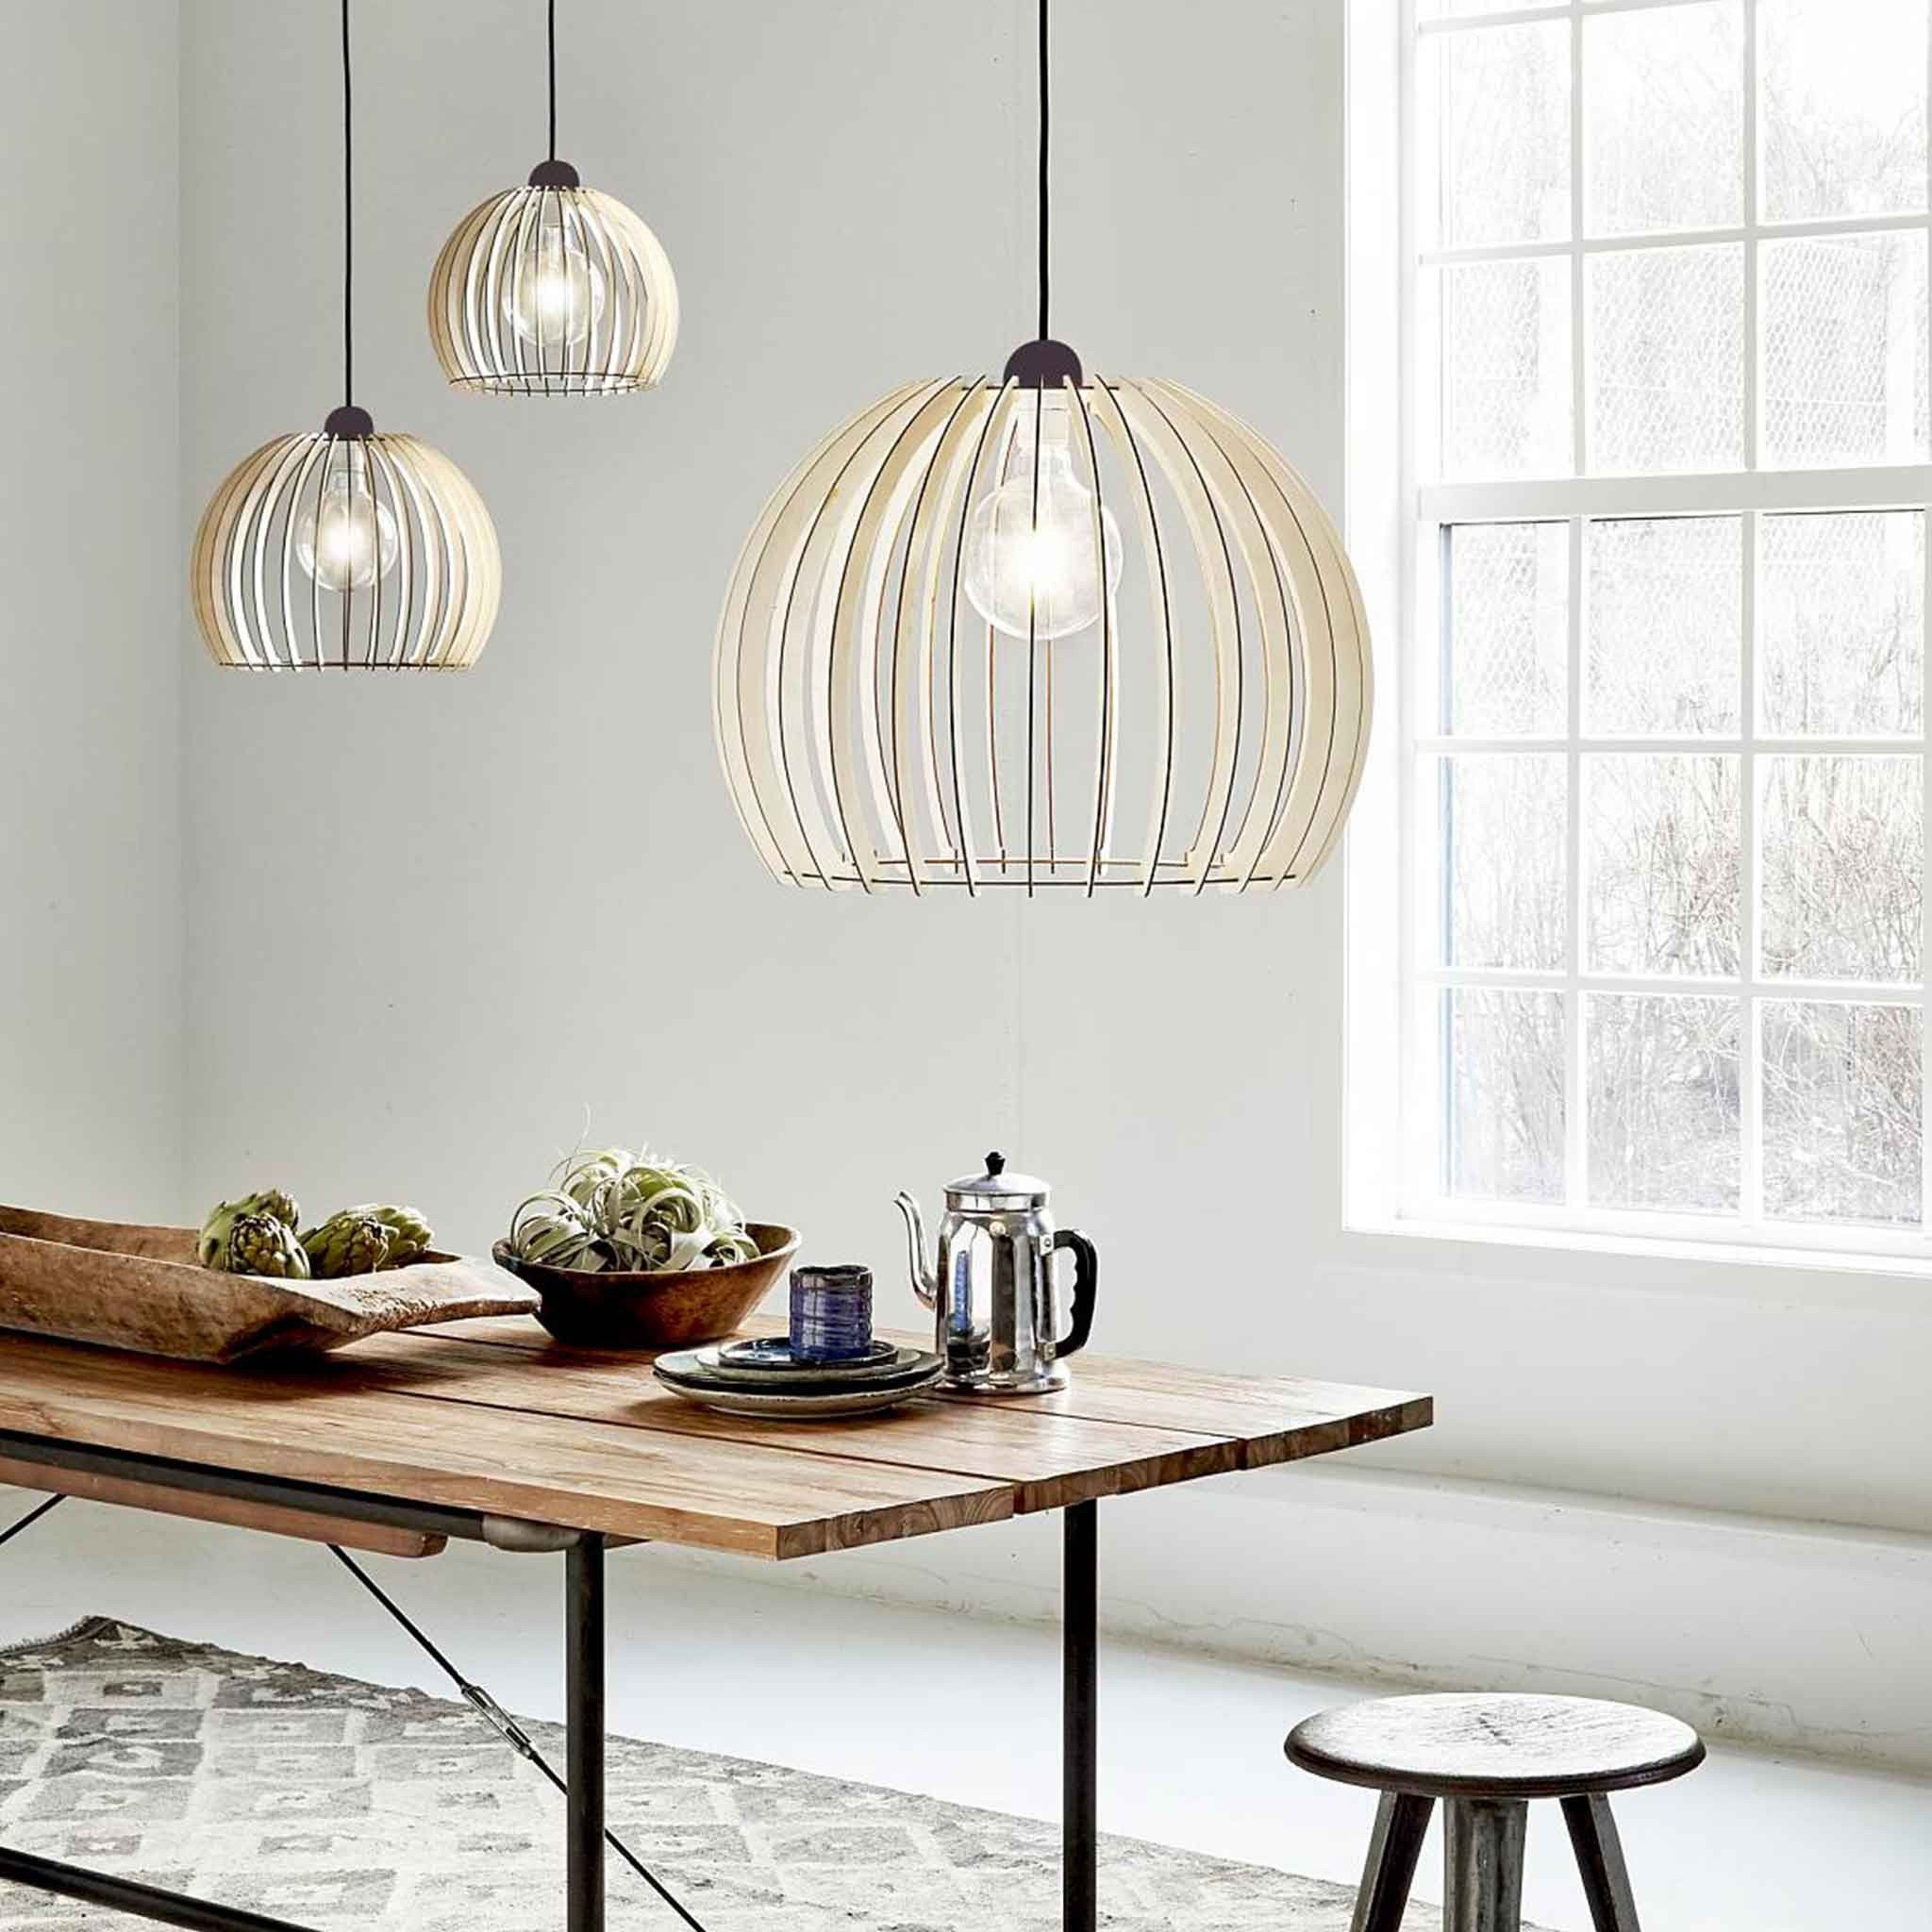 Chino large cm wooden cage pendant light pendant lighting